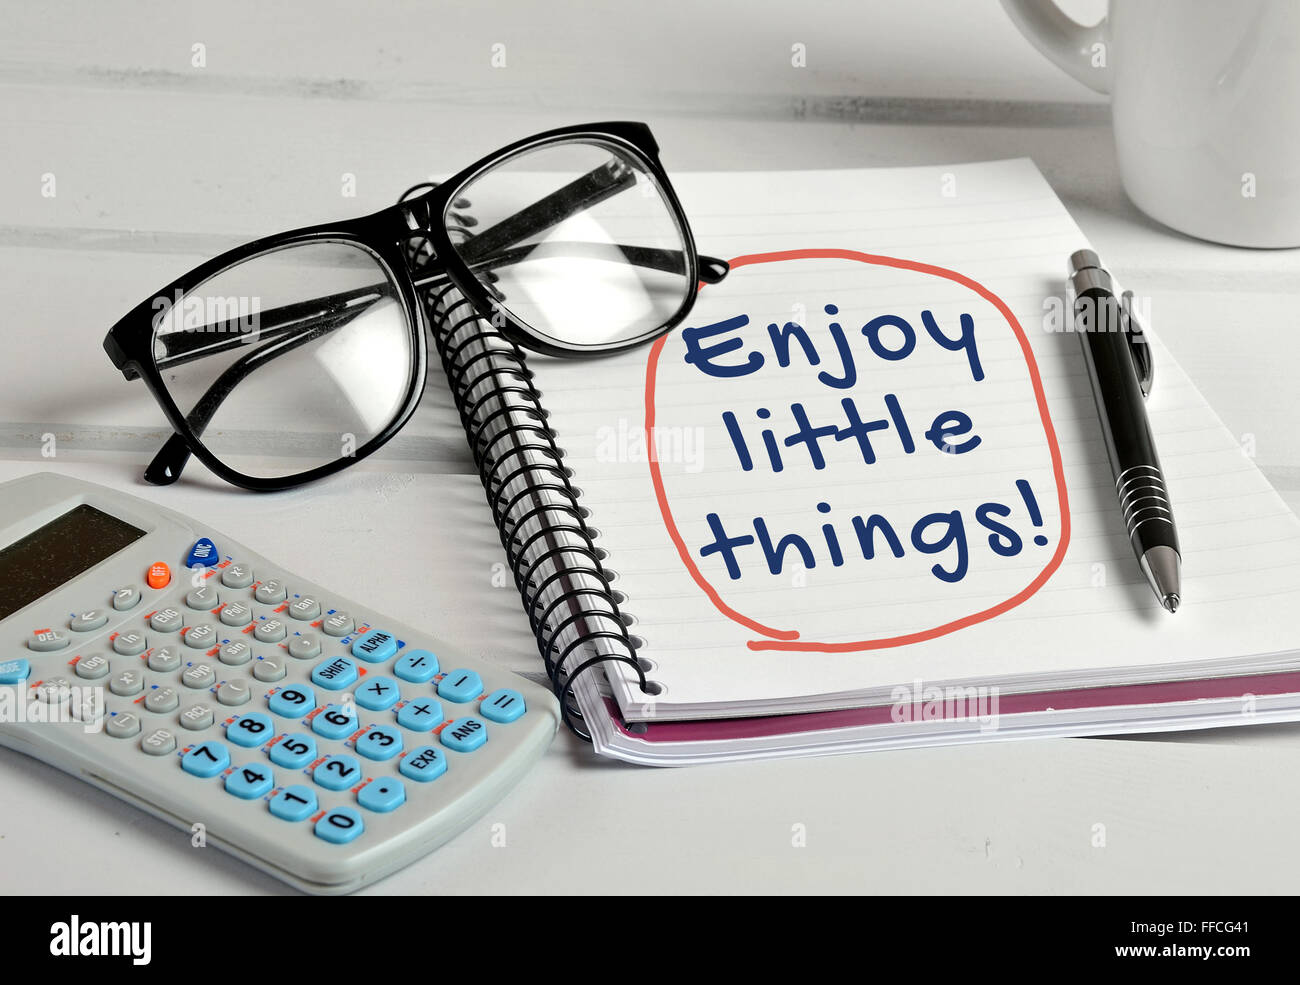 Enjoy the little things word on notebook page - Stock Image